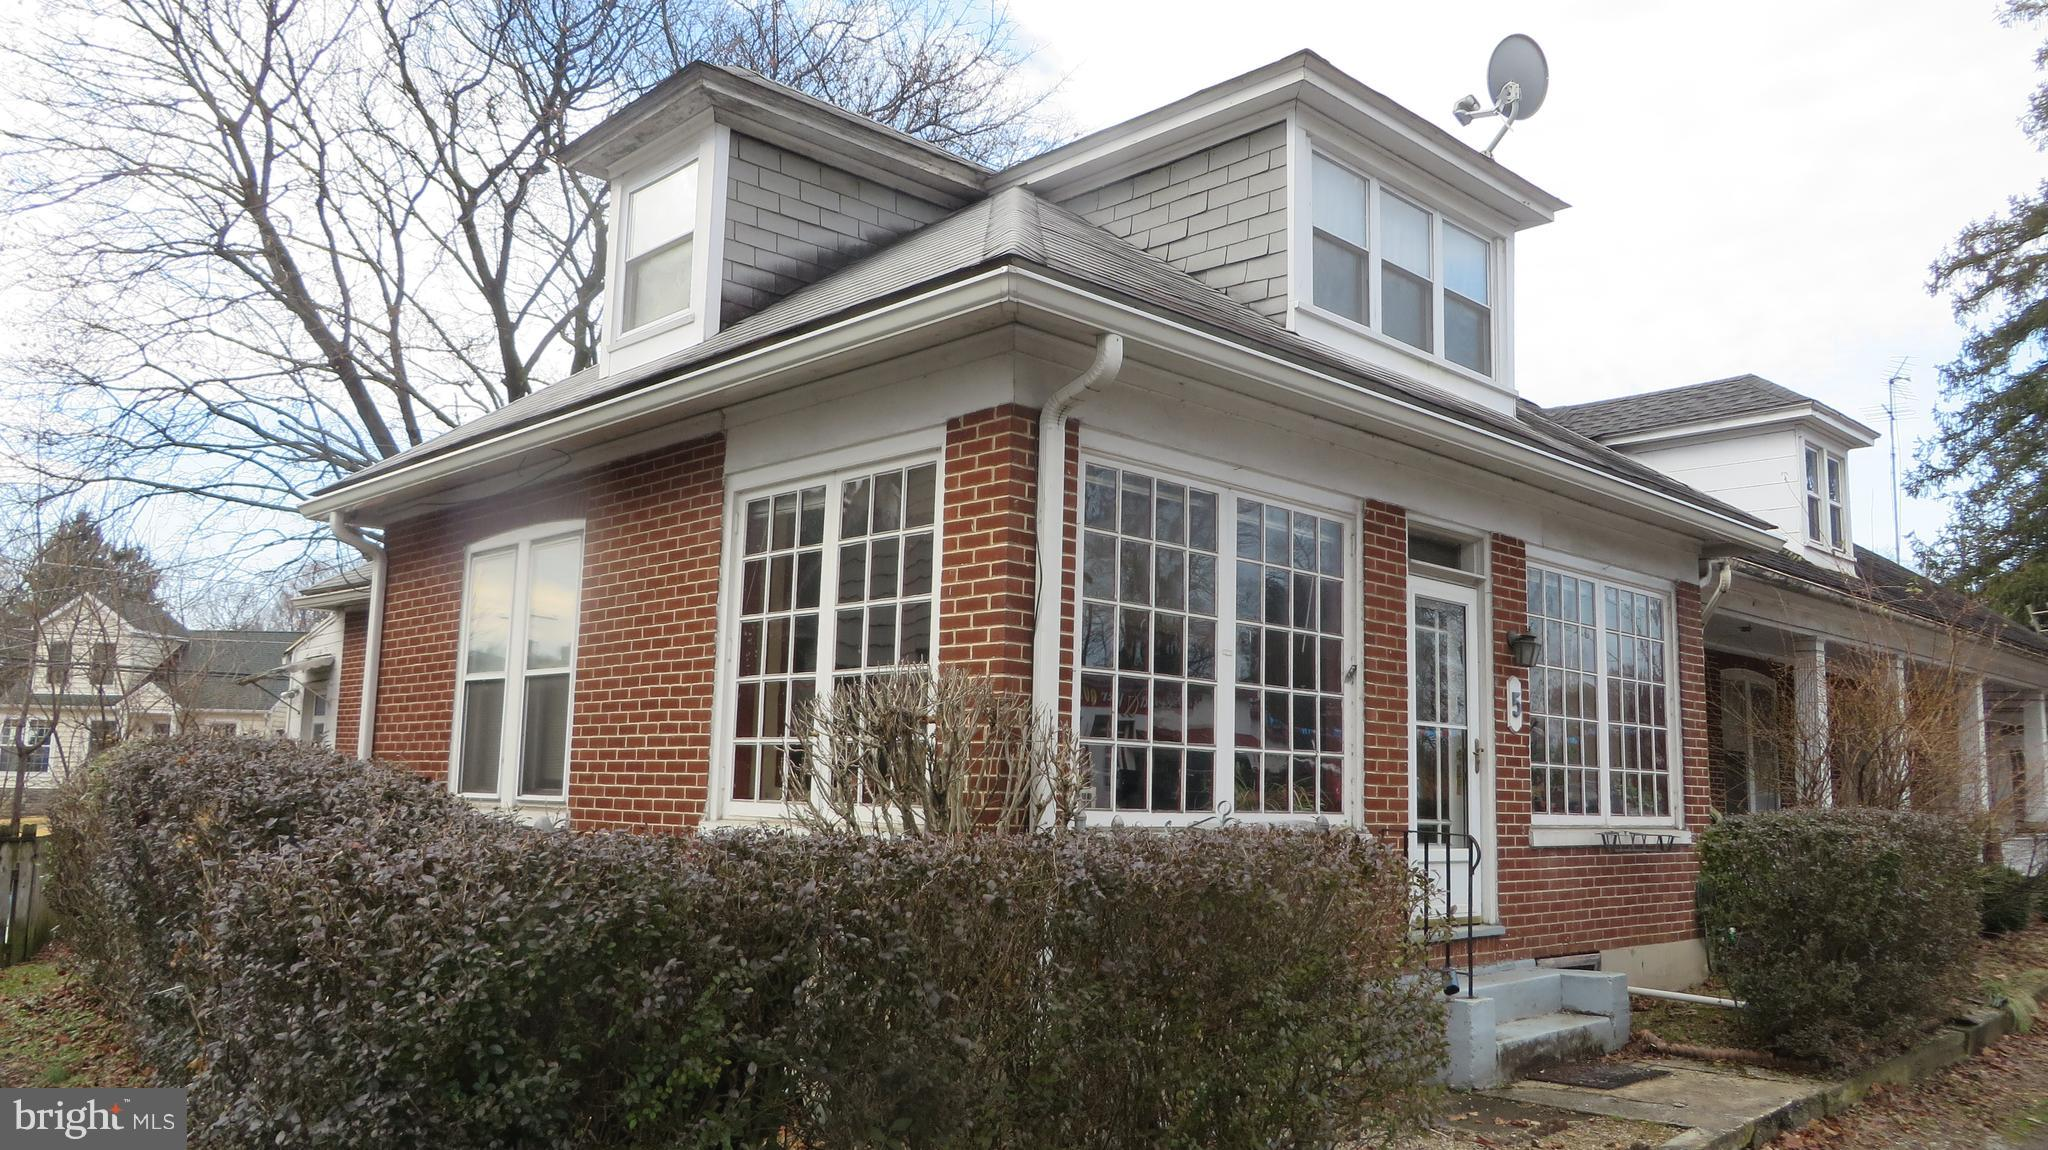 5 FRONT STREET, BOILING SPRINGS, PA 17007